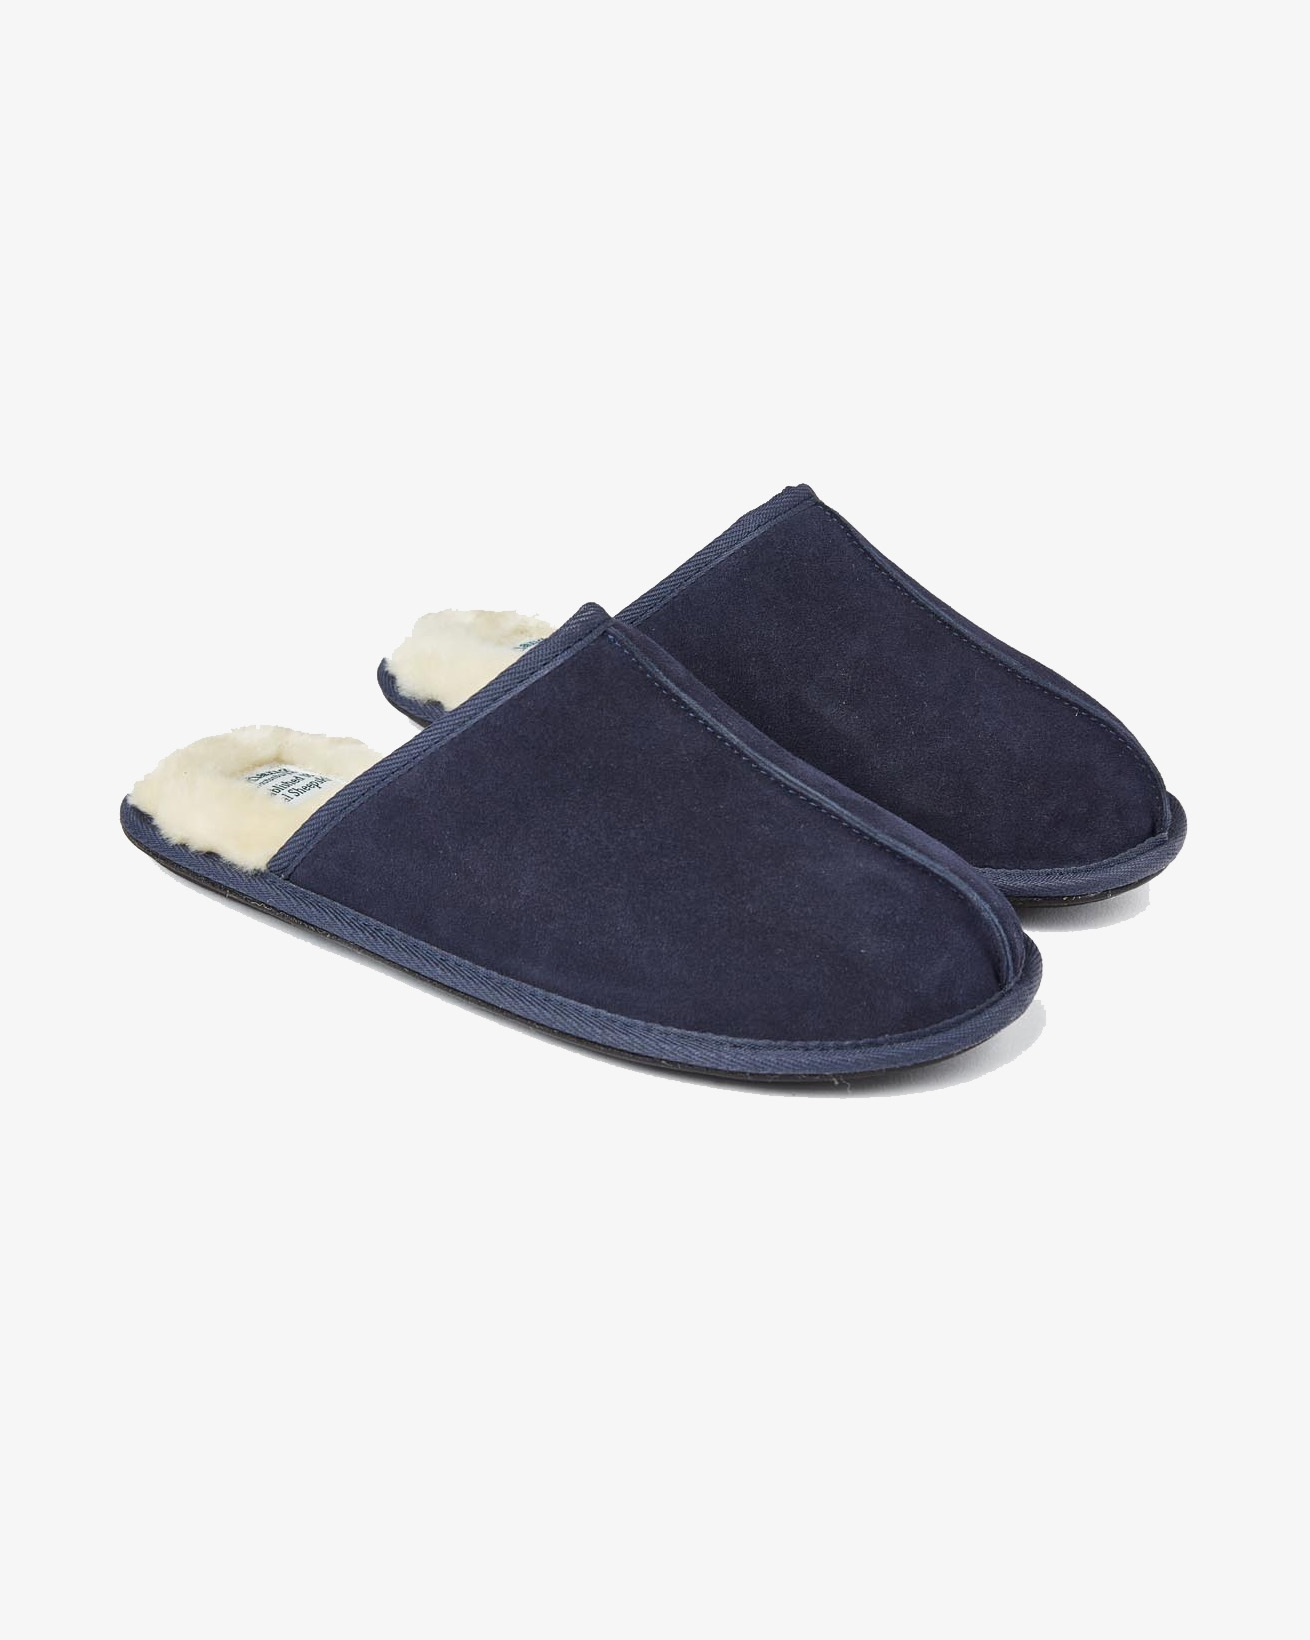 Ladies Bere Slipper - Medium - Navy